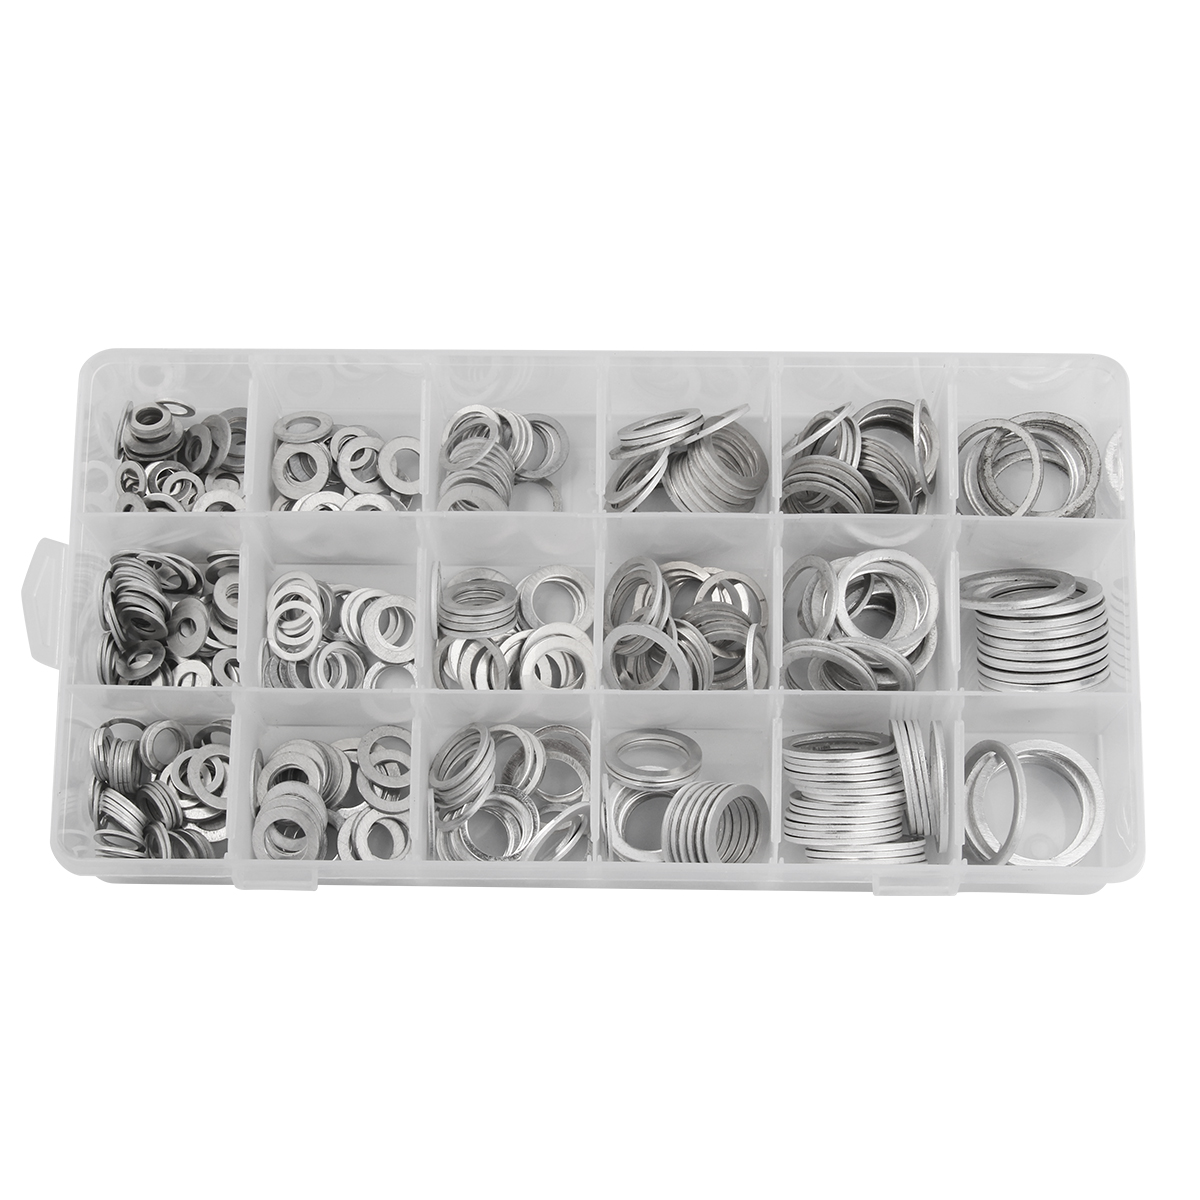 Image 2 - 450Pcs Gaskets Washers Gasket Aluminum Flat Metal Washer Gasket Assorted Aluminum Sealing Rings set With Box-in Washers from Home Improvement